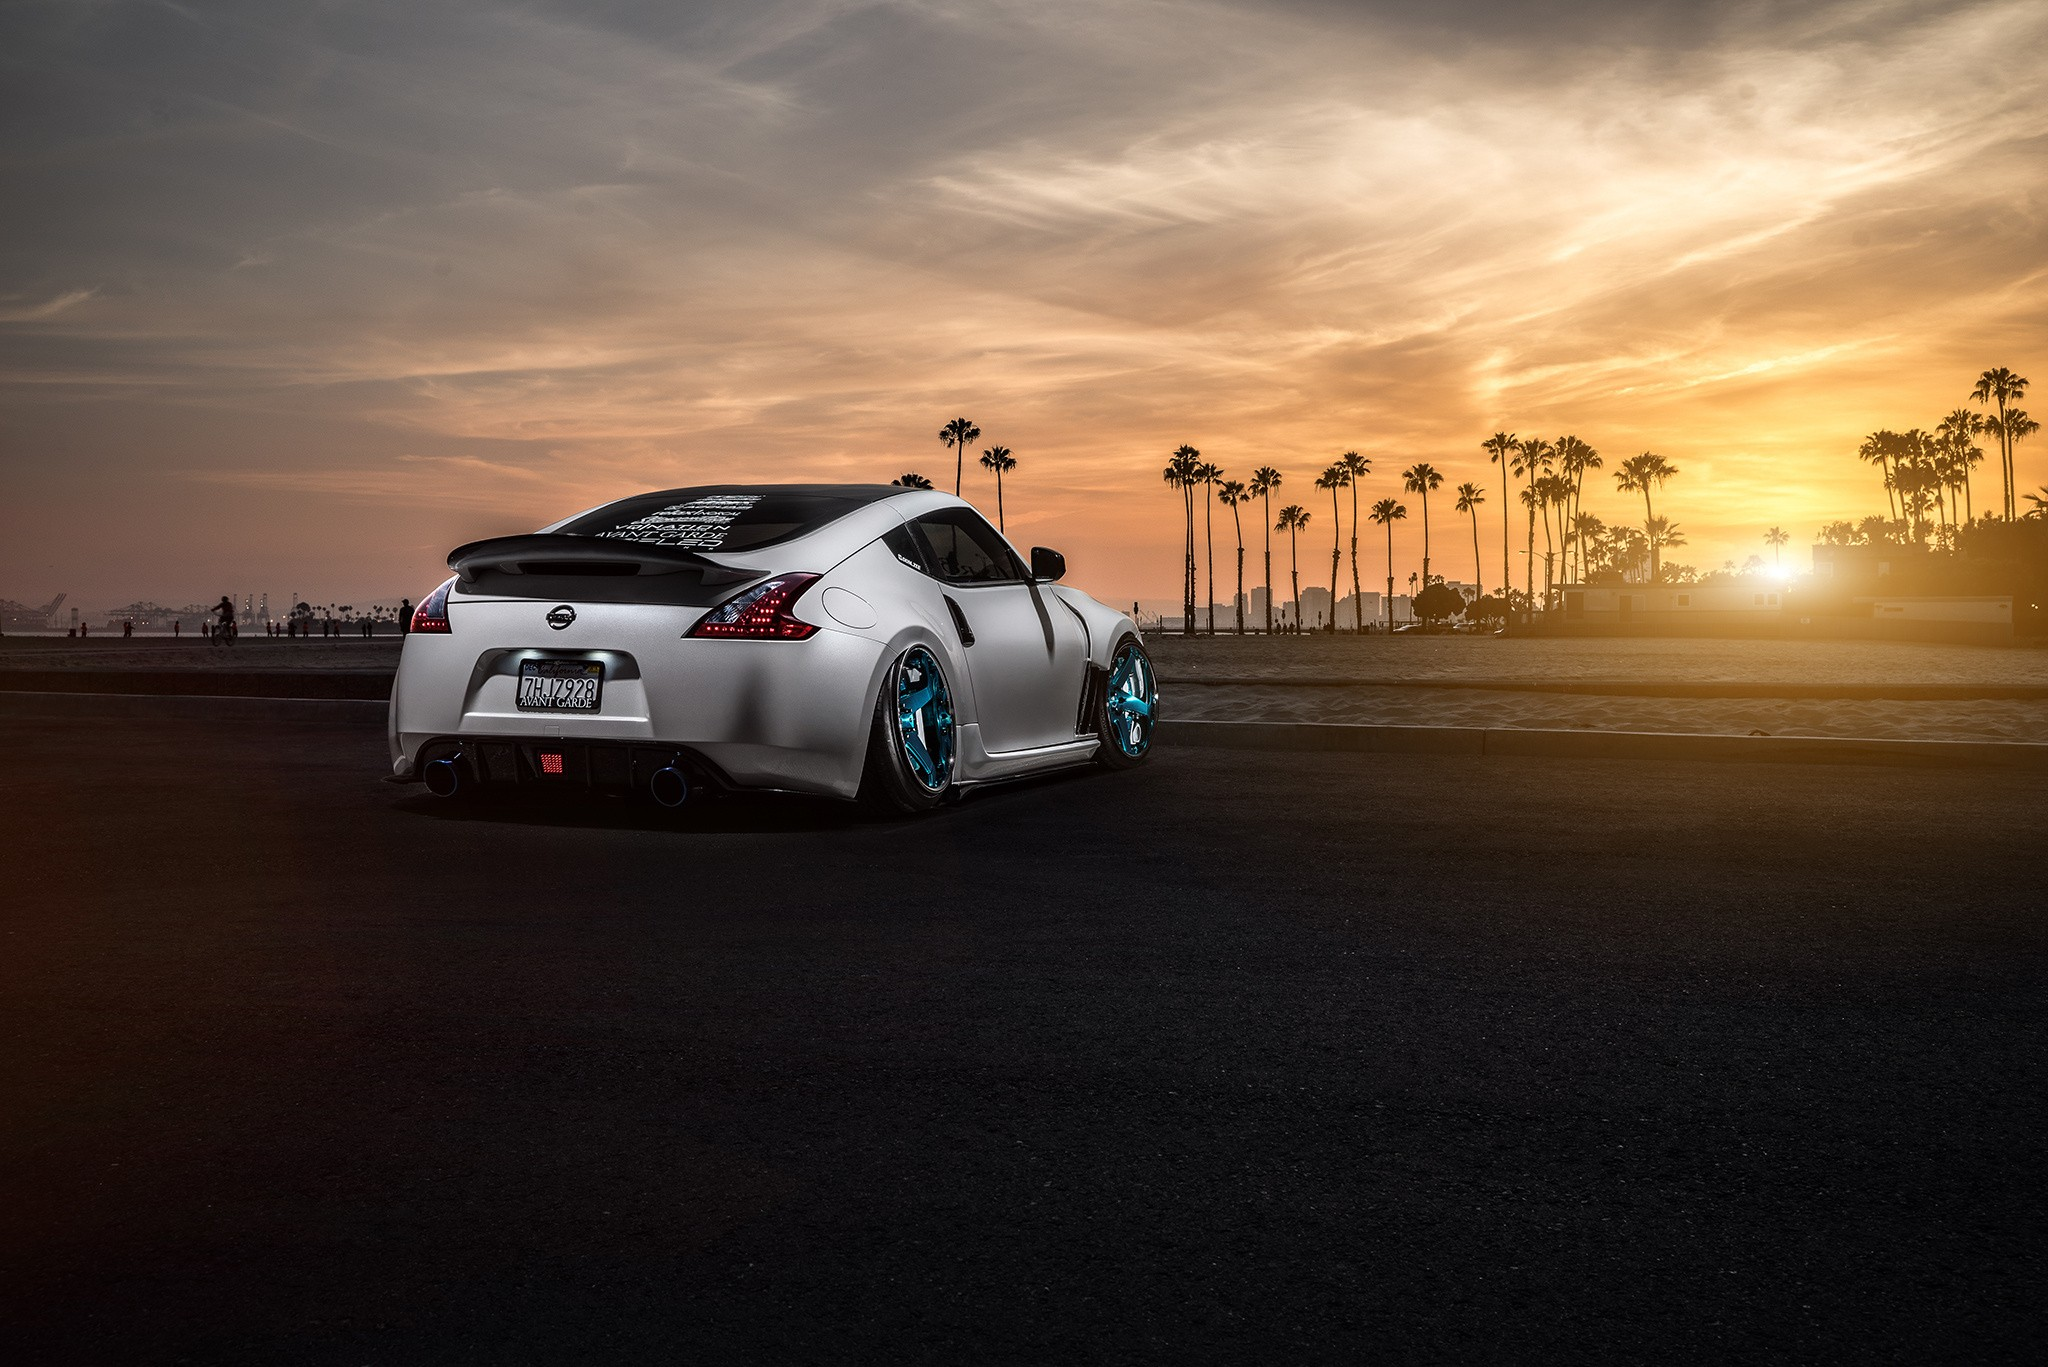 Sports Car Wallpaper 3d Nissan 370z Car Stance Sunlight Palm Trees Wallpapers